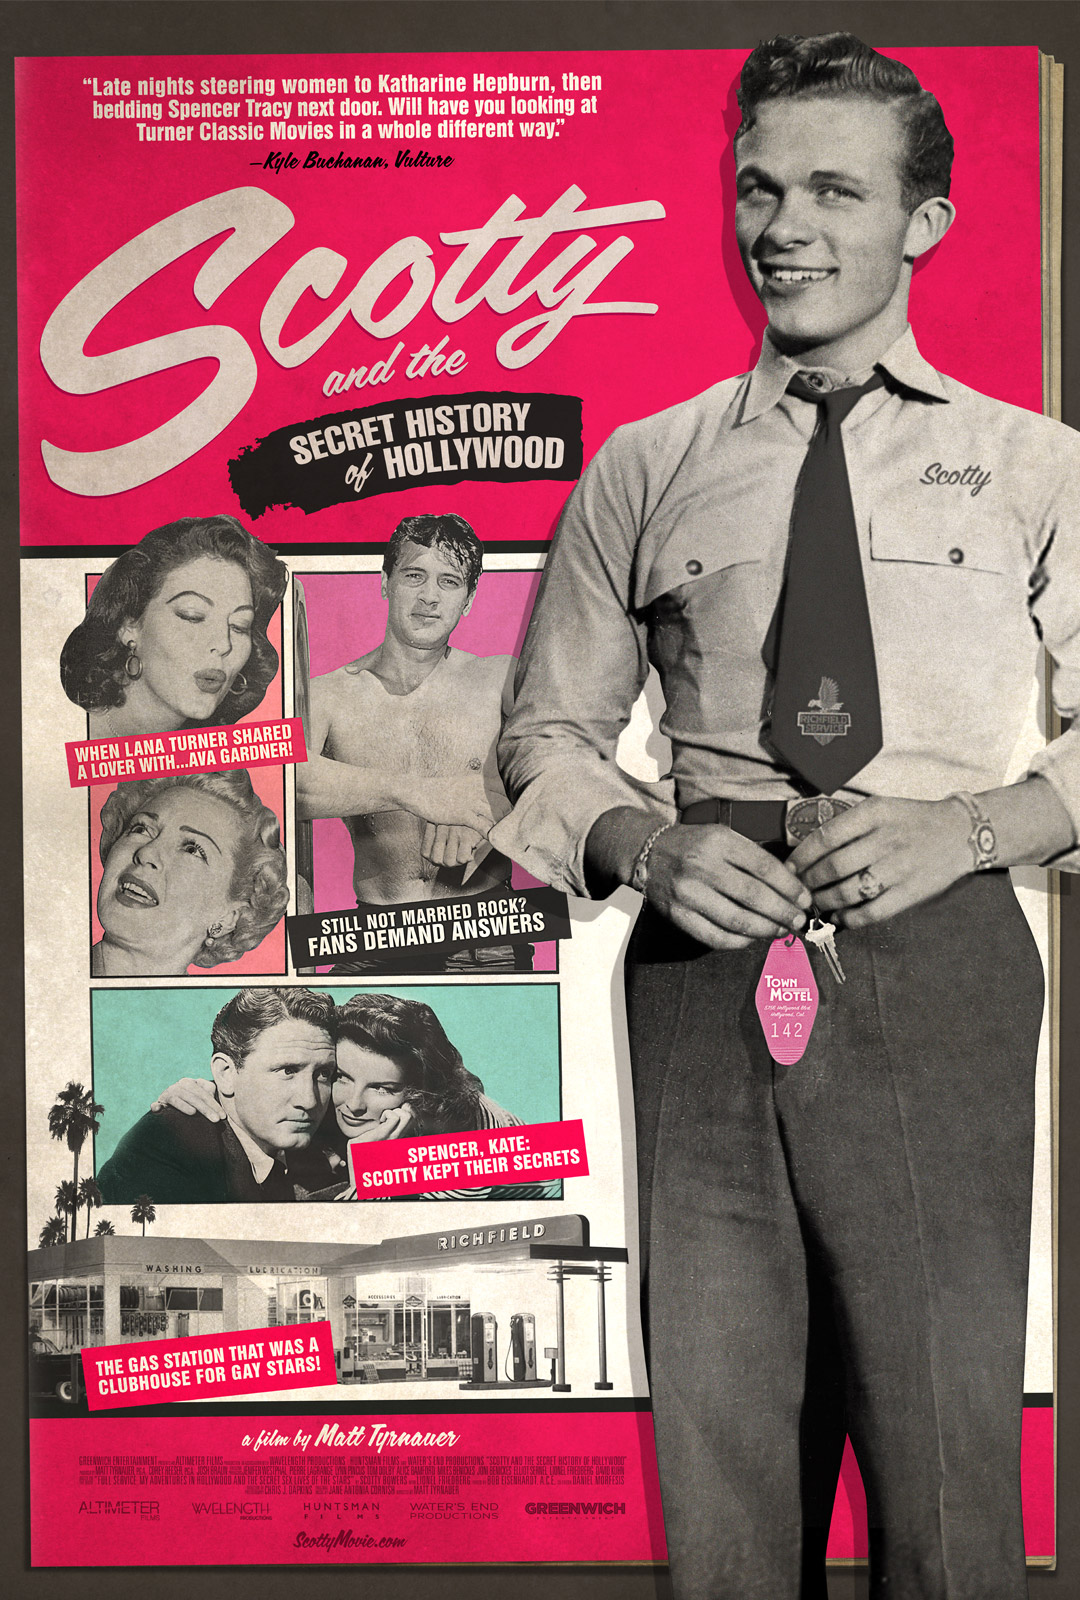 Scotty and the Secret History of Hollywood - OVERVIEW: A deliciously scandalous portrait of Scotty Bowers, who after decades of discretion wrote a best-selling memoir detailing his secret life during Hollywood's Golden Age as a legendary escort and sexual procurer to closeted gay celebrities including Cary Grant, Spencer Tracy, Katharine Hepburn and many more.FILMMAKER: A film by Matt Tyrnauer, Director of Where's my Roy Cohn, Studio 54, Citizen Jane, and Valentino: The Last EmperorWINNER: Critics' Choice Documentary AwardsPRESS: The New York Times, Deadline, The Hollywood Reporter, The Wrap, Huffington Post